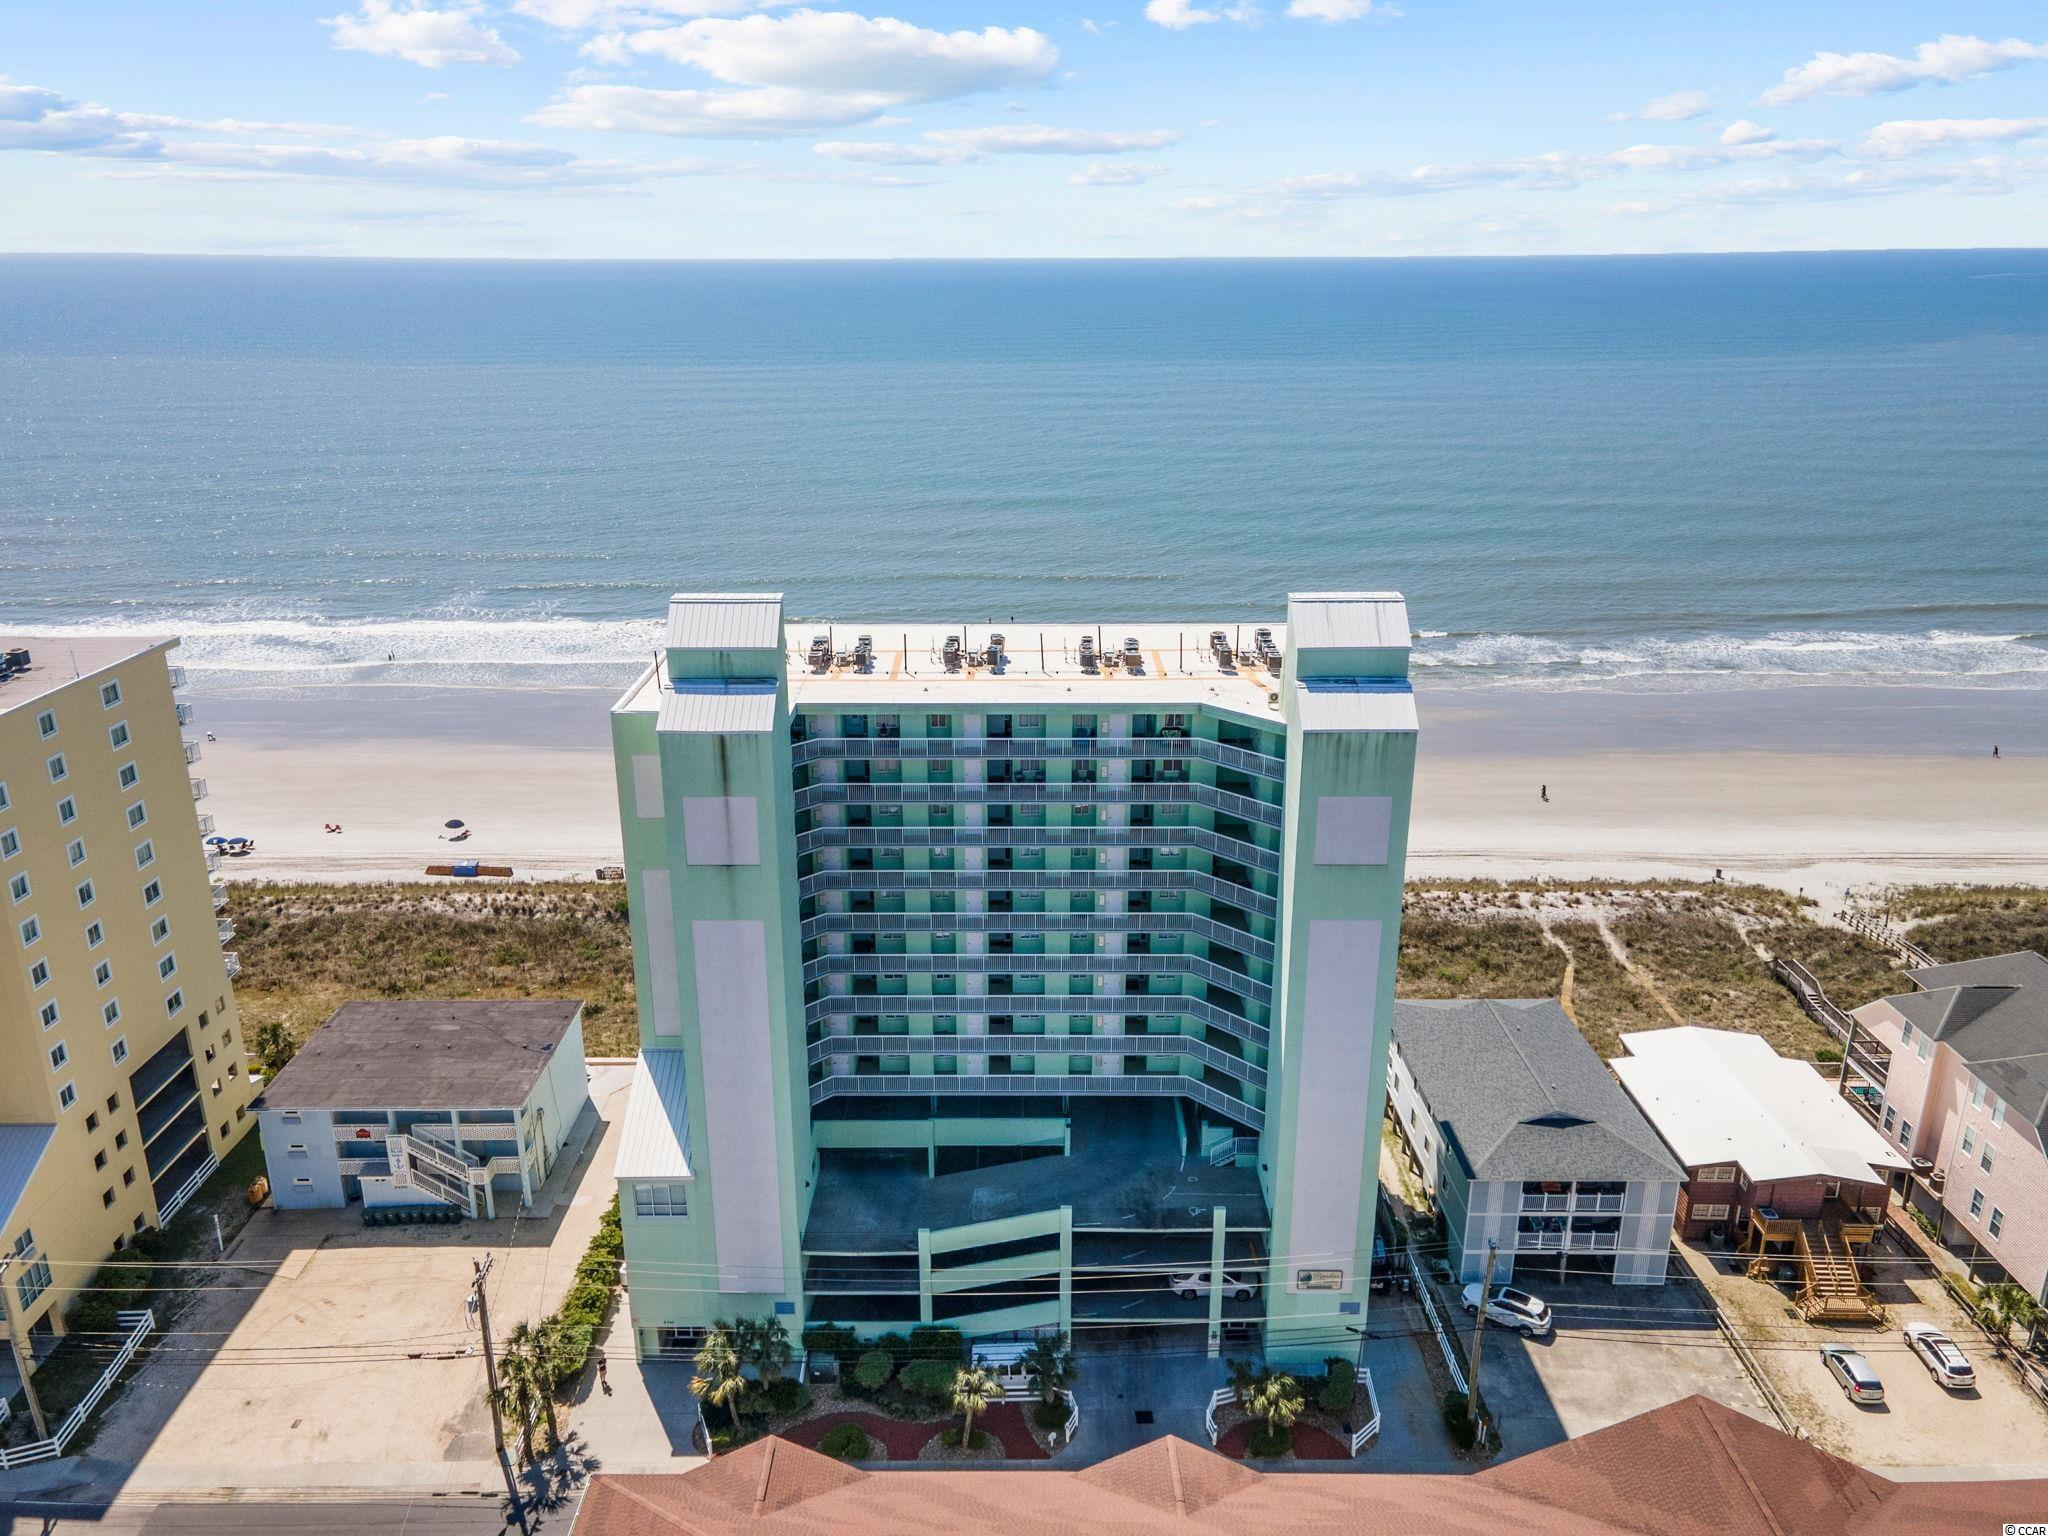 Put your feet in the sand with this spectacular end unit 4 bedroom 3 bath Paradise Pointe oceanfront condo. The WOW factor is the large oceanfront balcony with incredible views of the sparkling Atlantic Ocean. This piece of paradise, that is not on a rental program and only used as a second home, and features carpet & tile flooring, stylish furnishings, ceiling fans, and includes a spacious living/dining area with a sliding glass door that opens up to the wonderful balcony. The cheerful kitchen is equipped breakfast bar, solid surface counter tops, white on white appliances, smooth flat top range, built-in microwave, dishwasher, a side by side refrigerator with ice & water door dispenser, and ample counter & cabinet space. The oceanfront master bedroom suite offers a sliding glass door that opens up to the balcony, walk-in closet, ceiling fan, private access to the spacious master bathroom that presents showcasing a soothing jetted tub, step-in separate shower, a comfort station, and a double-sink vanity. The condo is completed with three additional inviting bedrooms, two full baths, and extra closet storage. This condo affords you easy access to the beach and golfing along with all of the other activities and happenings in North Myrtle Beach & Myrtle Beach including fun eateries, award winning off-Broadway shows, public fishing piers, and intriguing shopping adventures along the Grand Strand. Conveniently located to your everyday needs, including grocery stores, banks, post offices, medical centers, doctors' offices, and pharmacies. Check out our state of the art 3-D Virtual Tour.